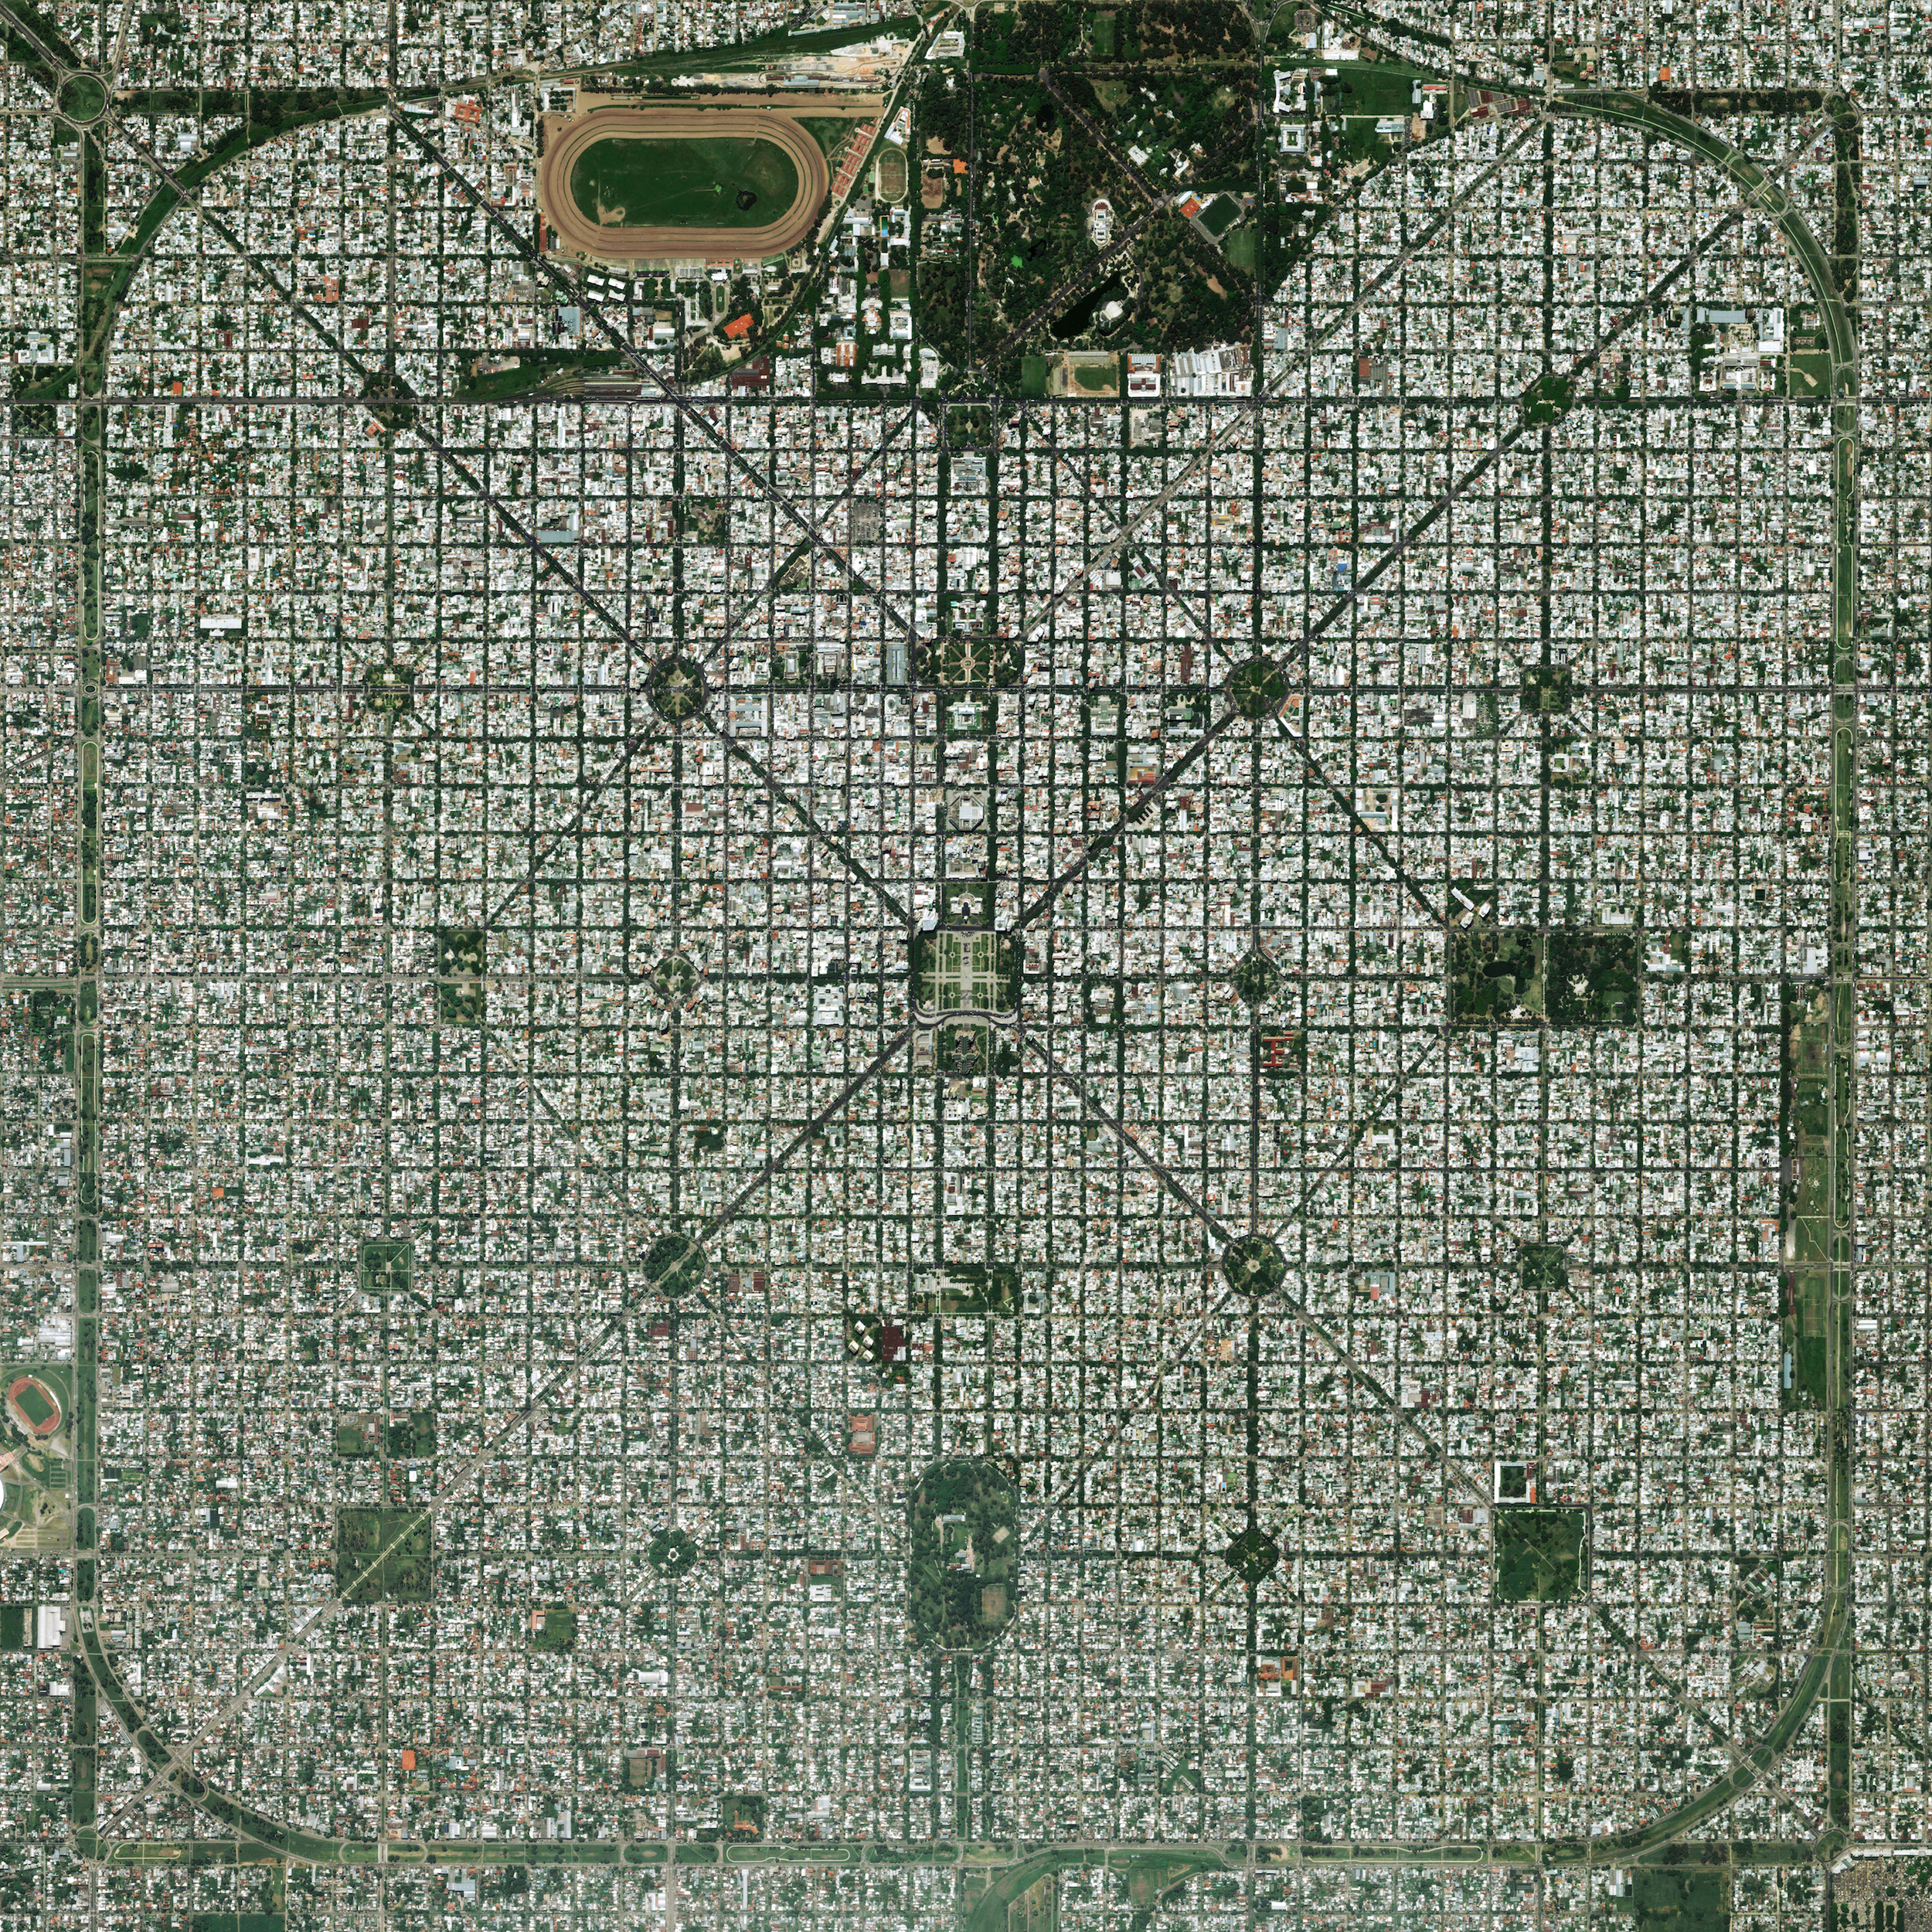 """11/6/2015   La Plata   Buenos, Aires, Argentina  34°55′16″S 57°57′16″W    The planned city of La Plata, the capital city of the Province of Buenos Aires, is characterized by its strict grid pattern. At the 1889 World's Fair in Paris, the new city was awarded two gold medals for the """"City of the Future"""" and """"Better performance built."""""""